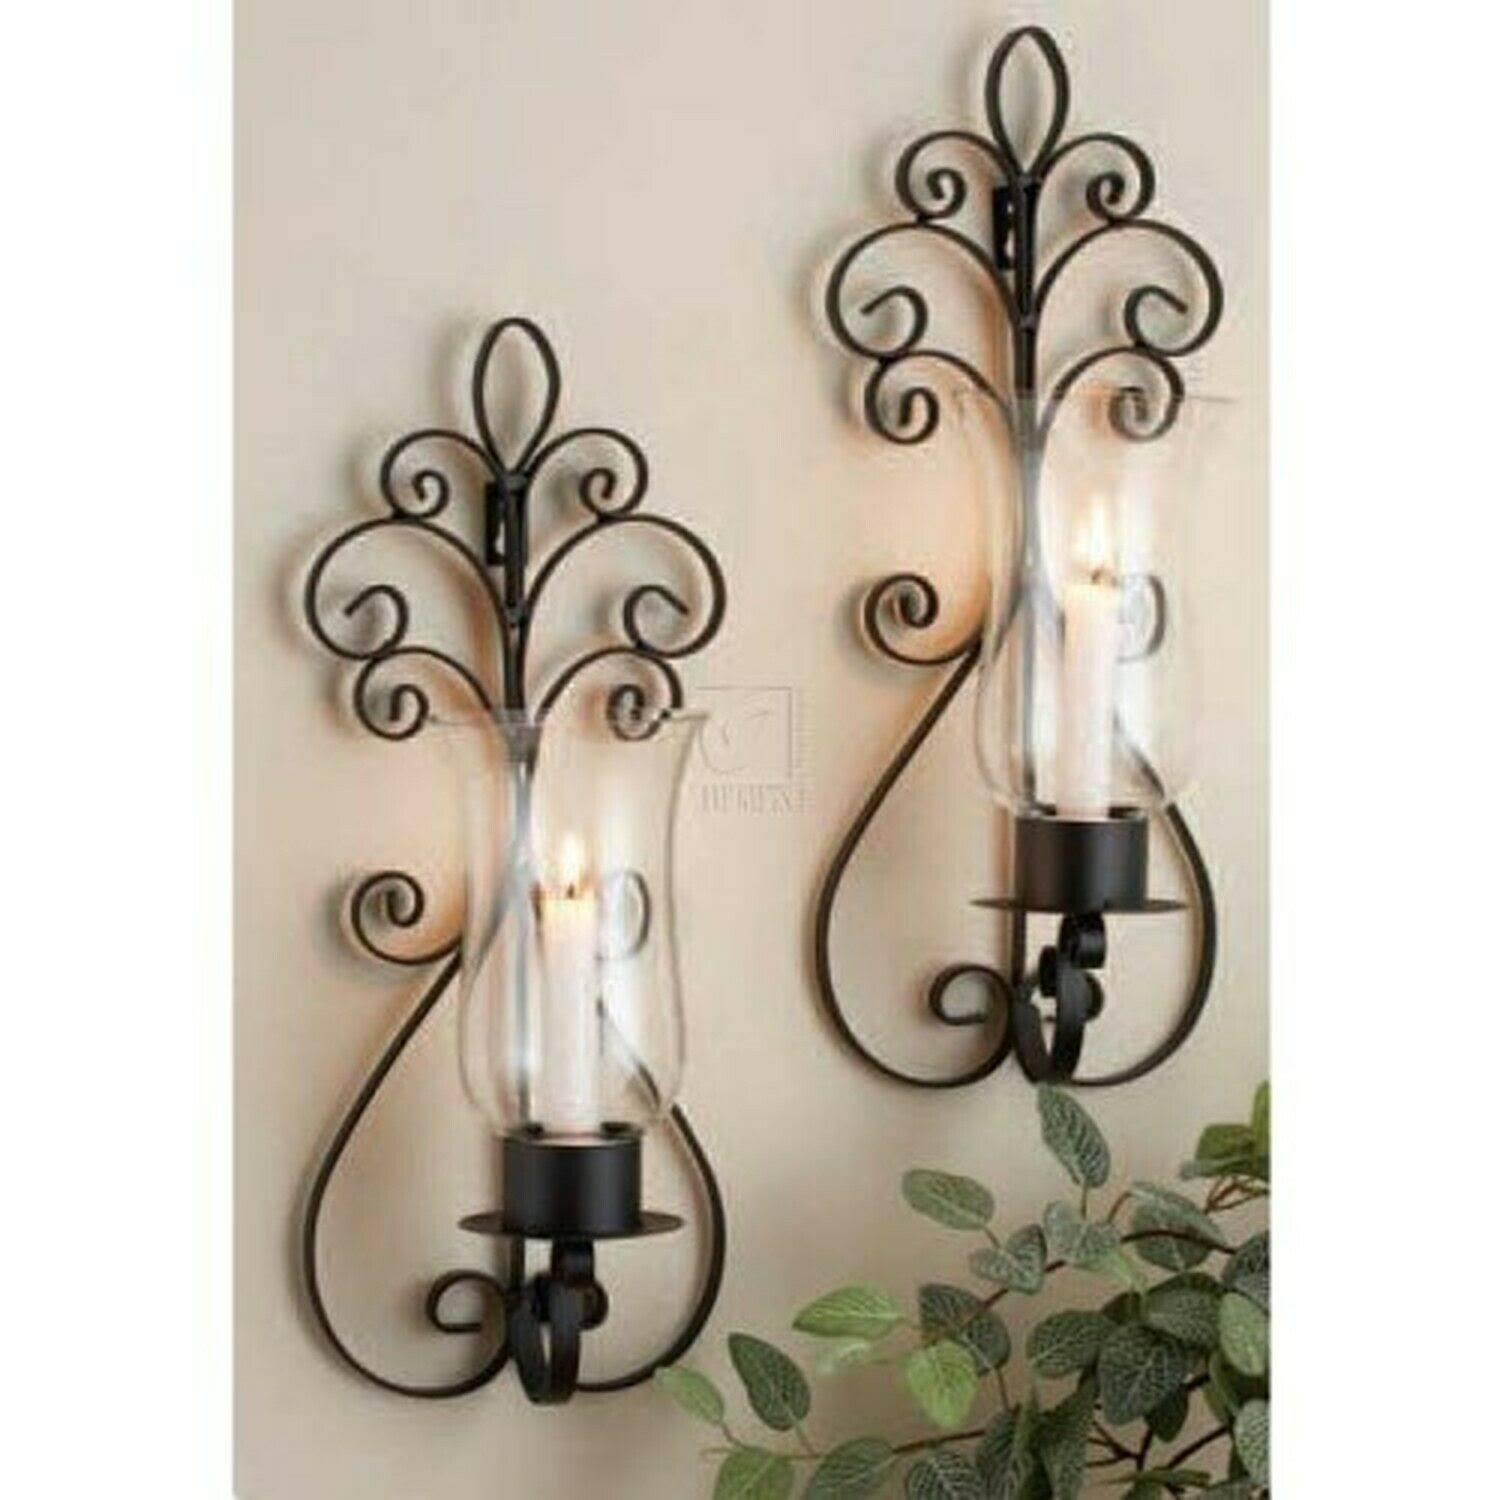 Home Essentials Candle Holder Sconces - Set of 2, 17""